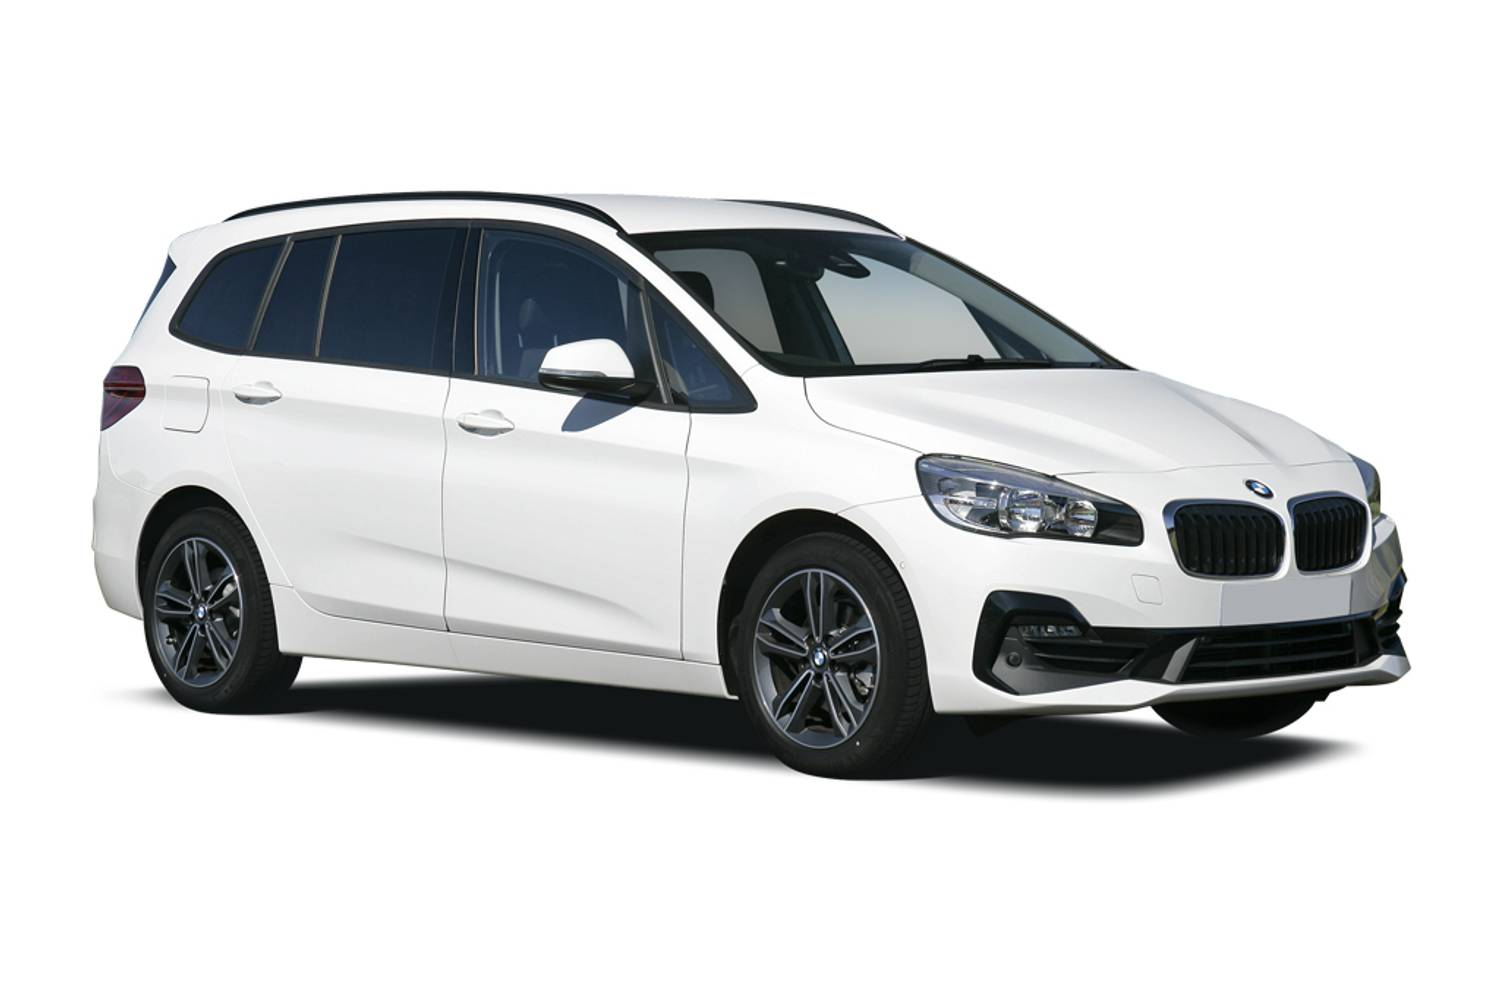 BMW 2 Series Gran Tourer 5dr Front Three Quarter